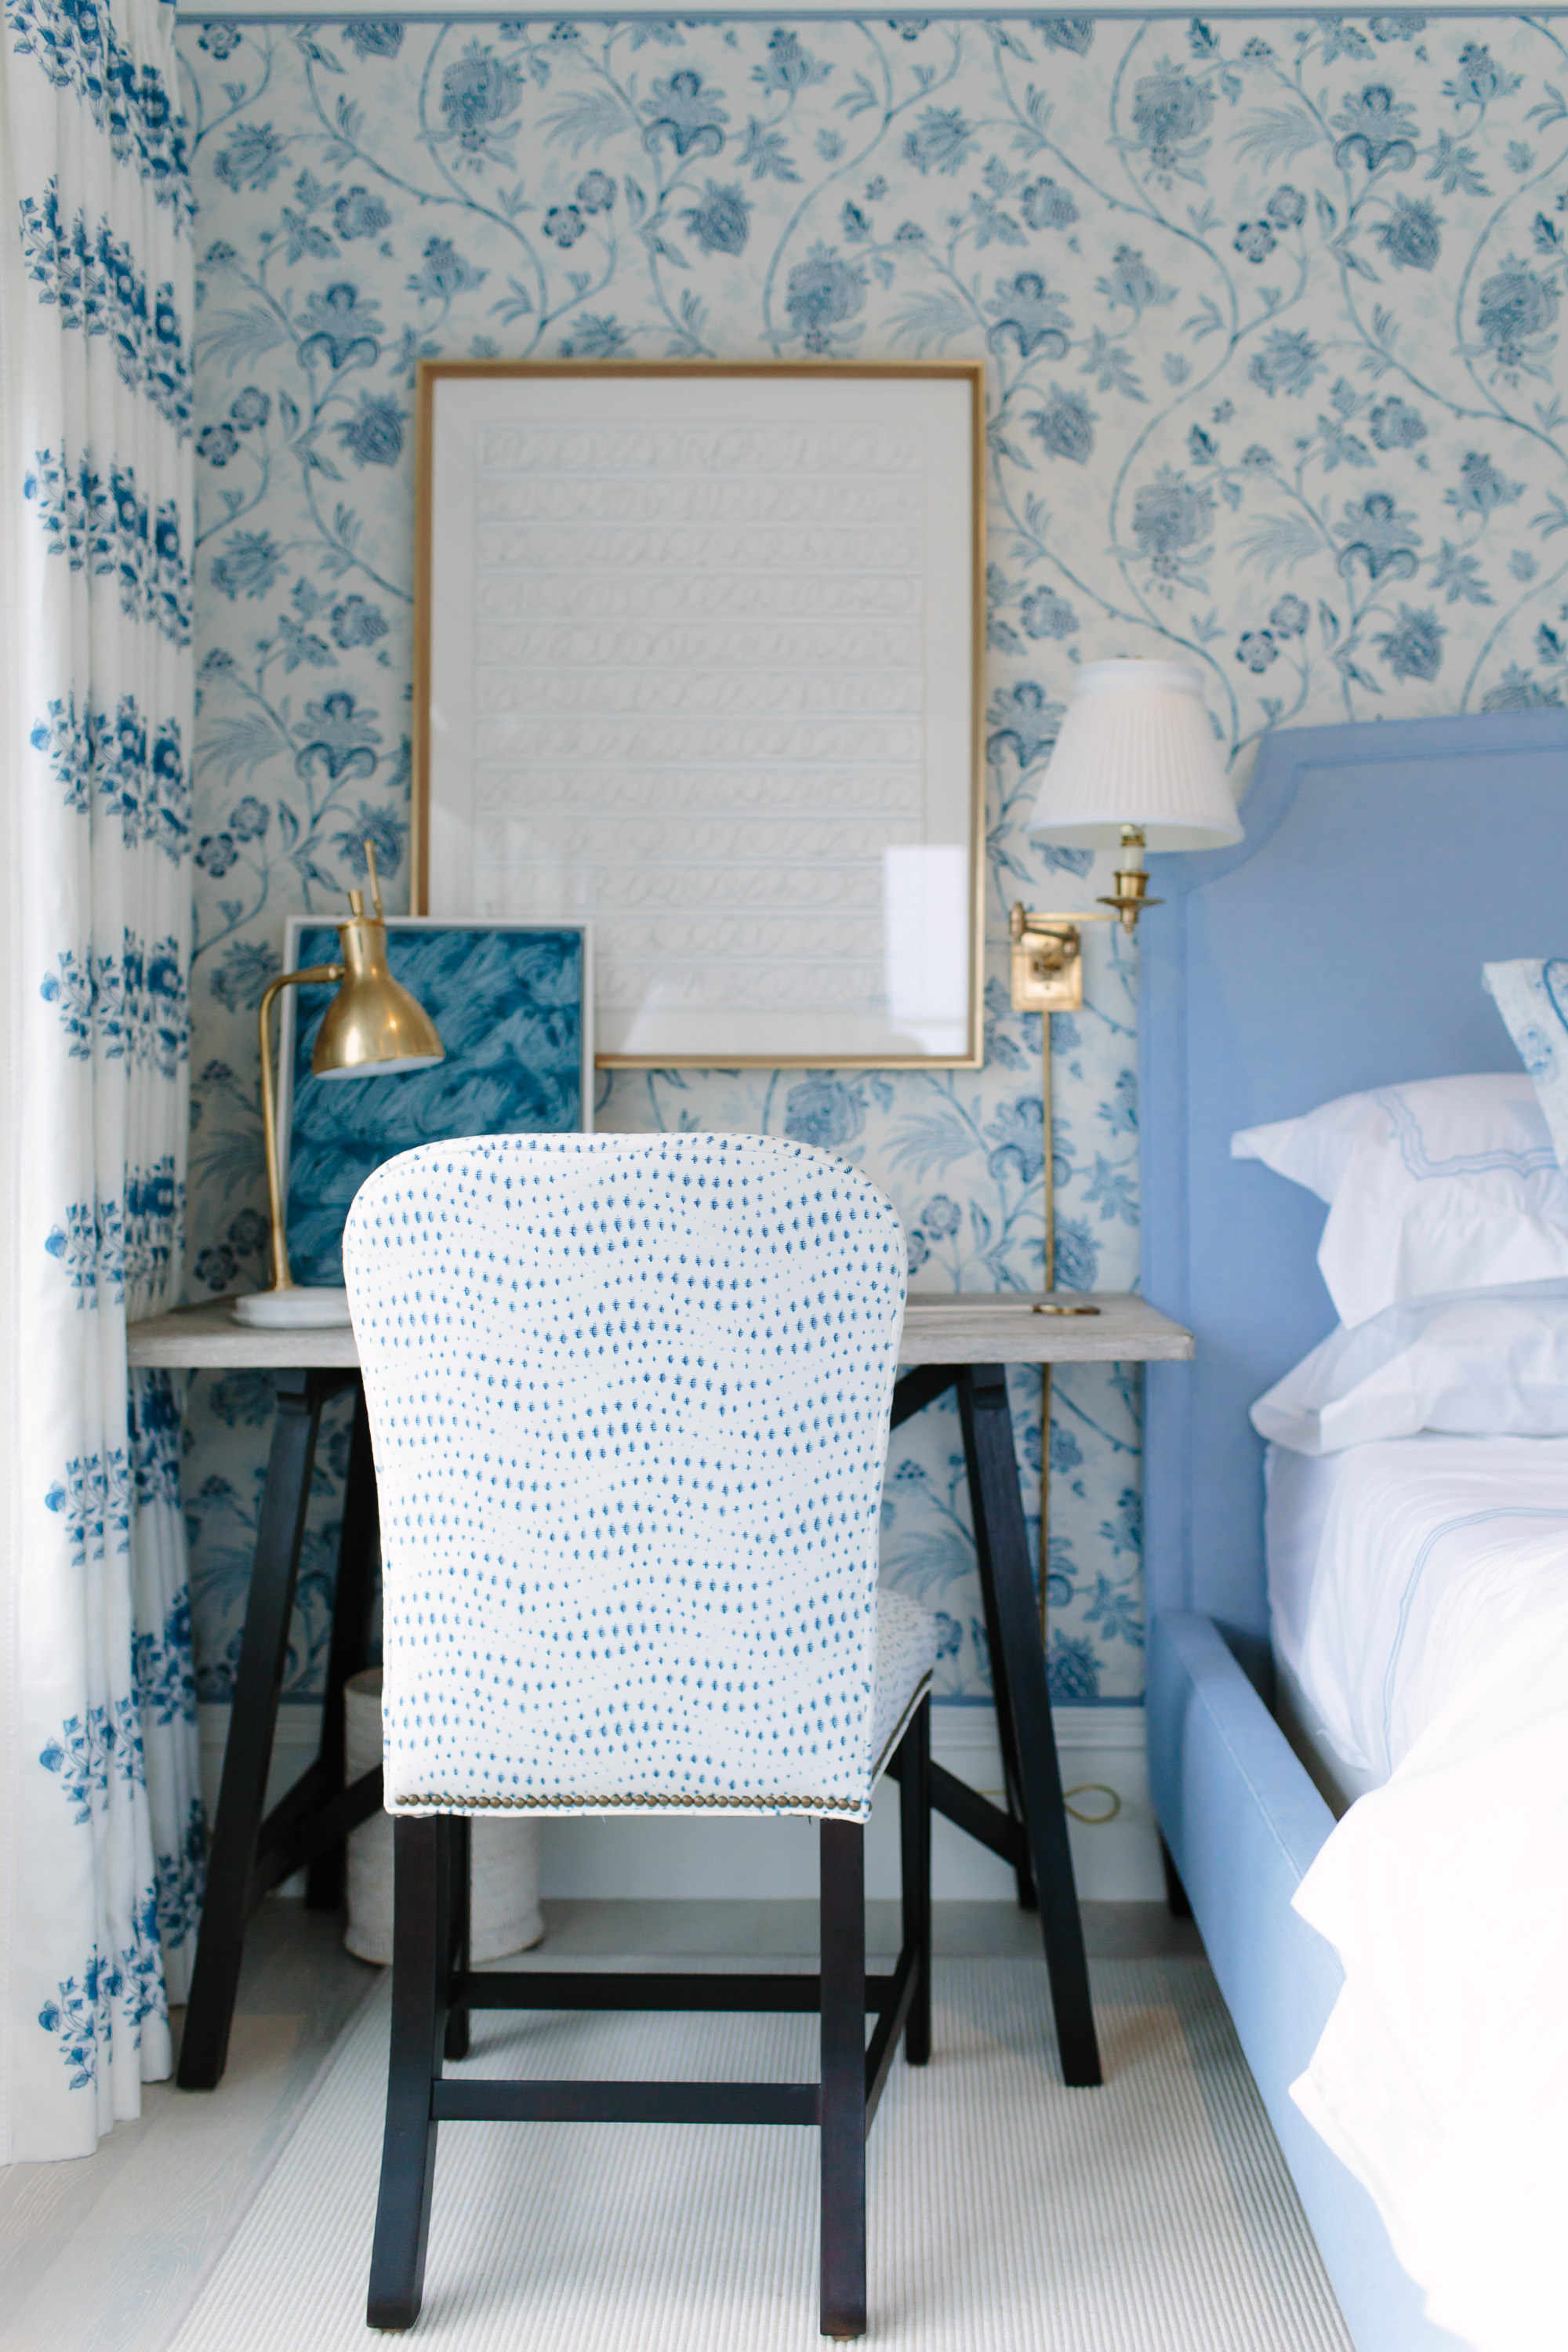 This Bedroom Was A Favorite. The Walls Are Actually Covered In Fabric,  Lending A Rich Texture For The Backdrop, And I Love The Shade Of Blue That  He Chose ...